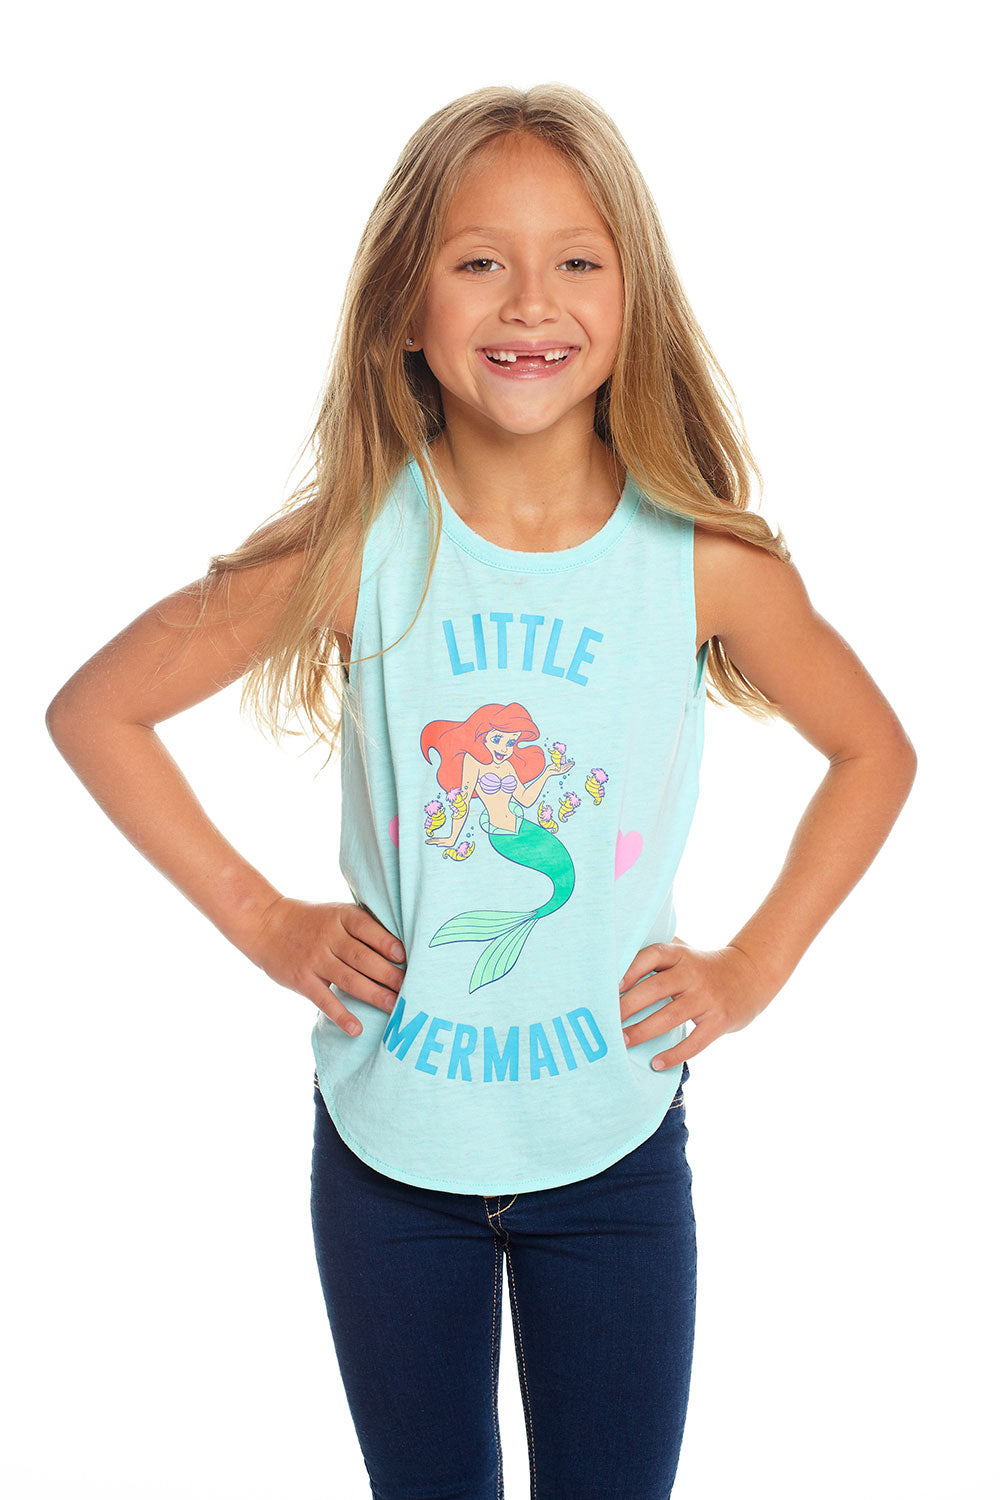 Disney's The Little Mermaid - Little Mermaid Friends, GIRLS, chaserbrand.com,chaser clothing,chaser apparel,chaser los angeles